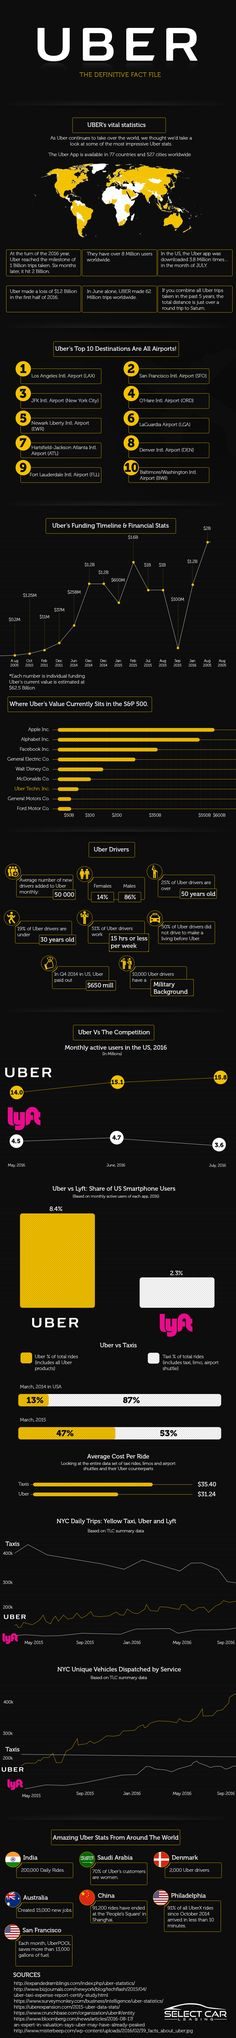 Uber : The Definitive Fact File #Infographic #Business #Transportation